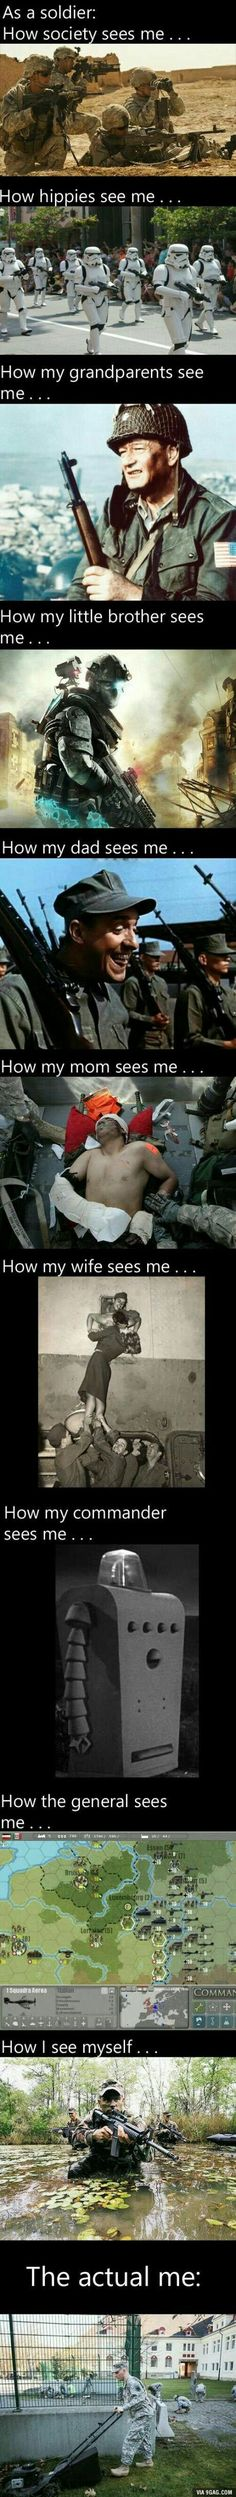 Funny Games My Little Army : funny, games, little, Funny, Pictures, Ideas, Military, Memes,, Humor,, Jokes